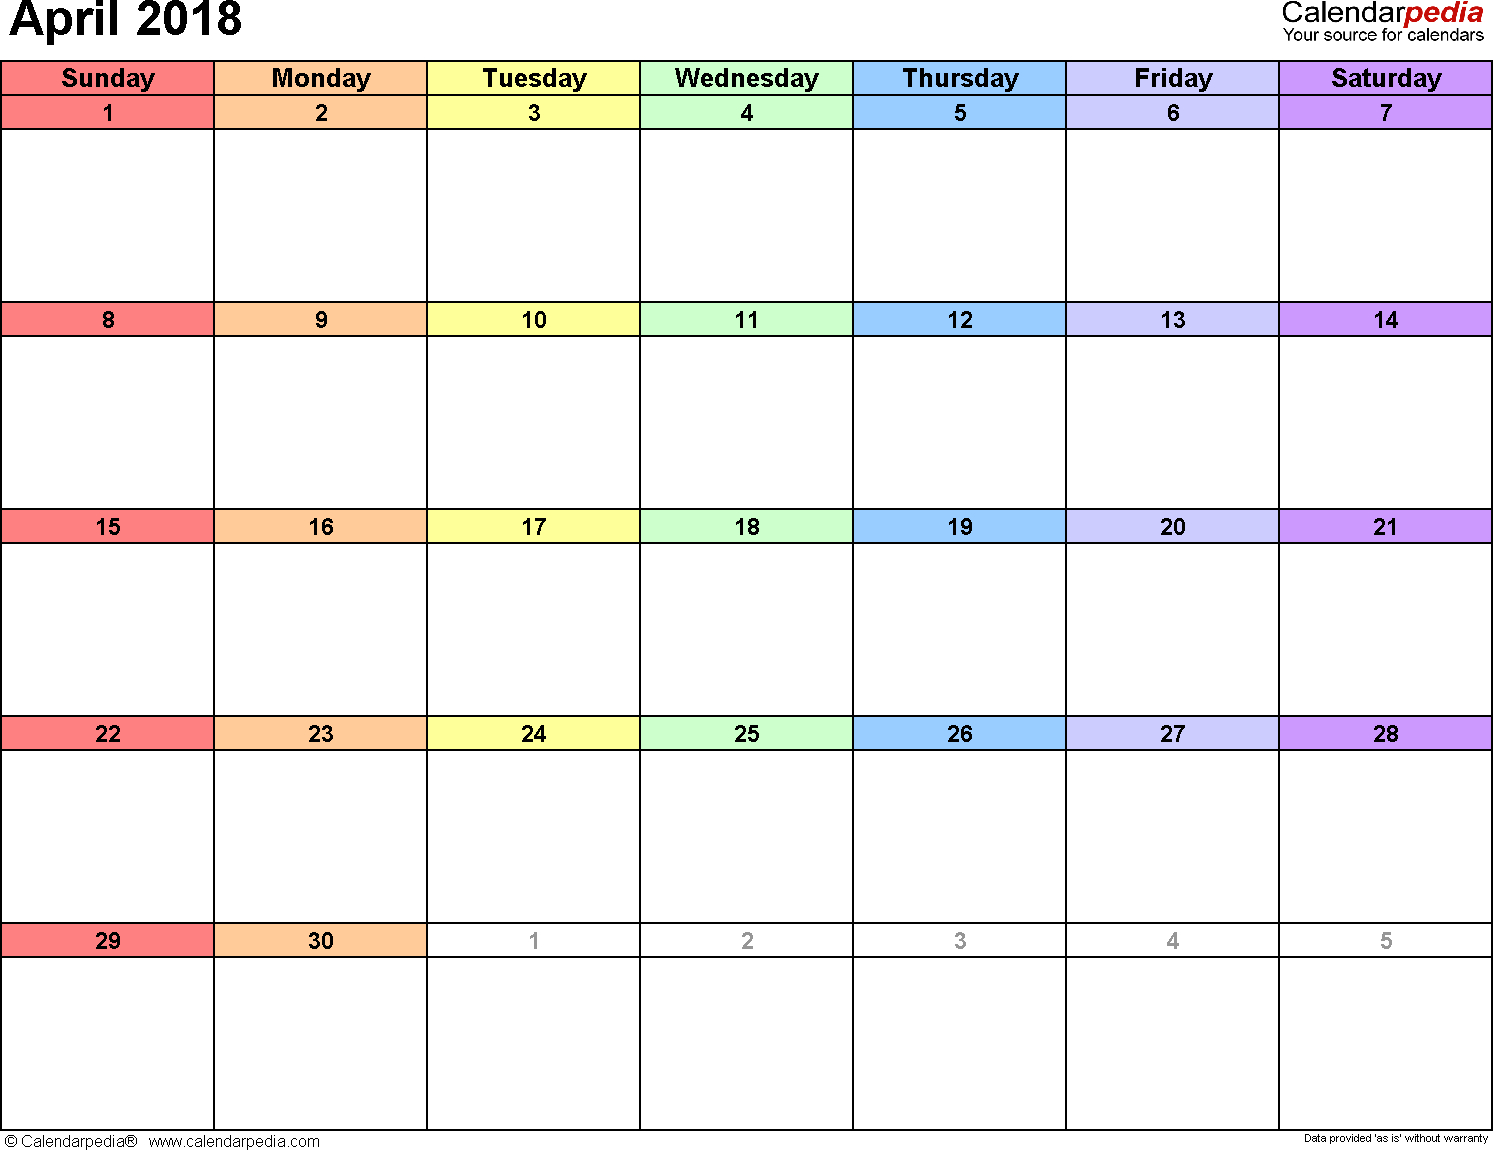 April 2018 Calendars For Word, Excel & Pdf pertaining to April Calendar Template